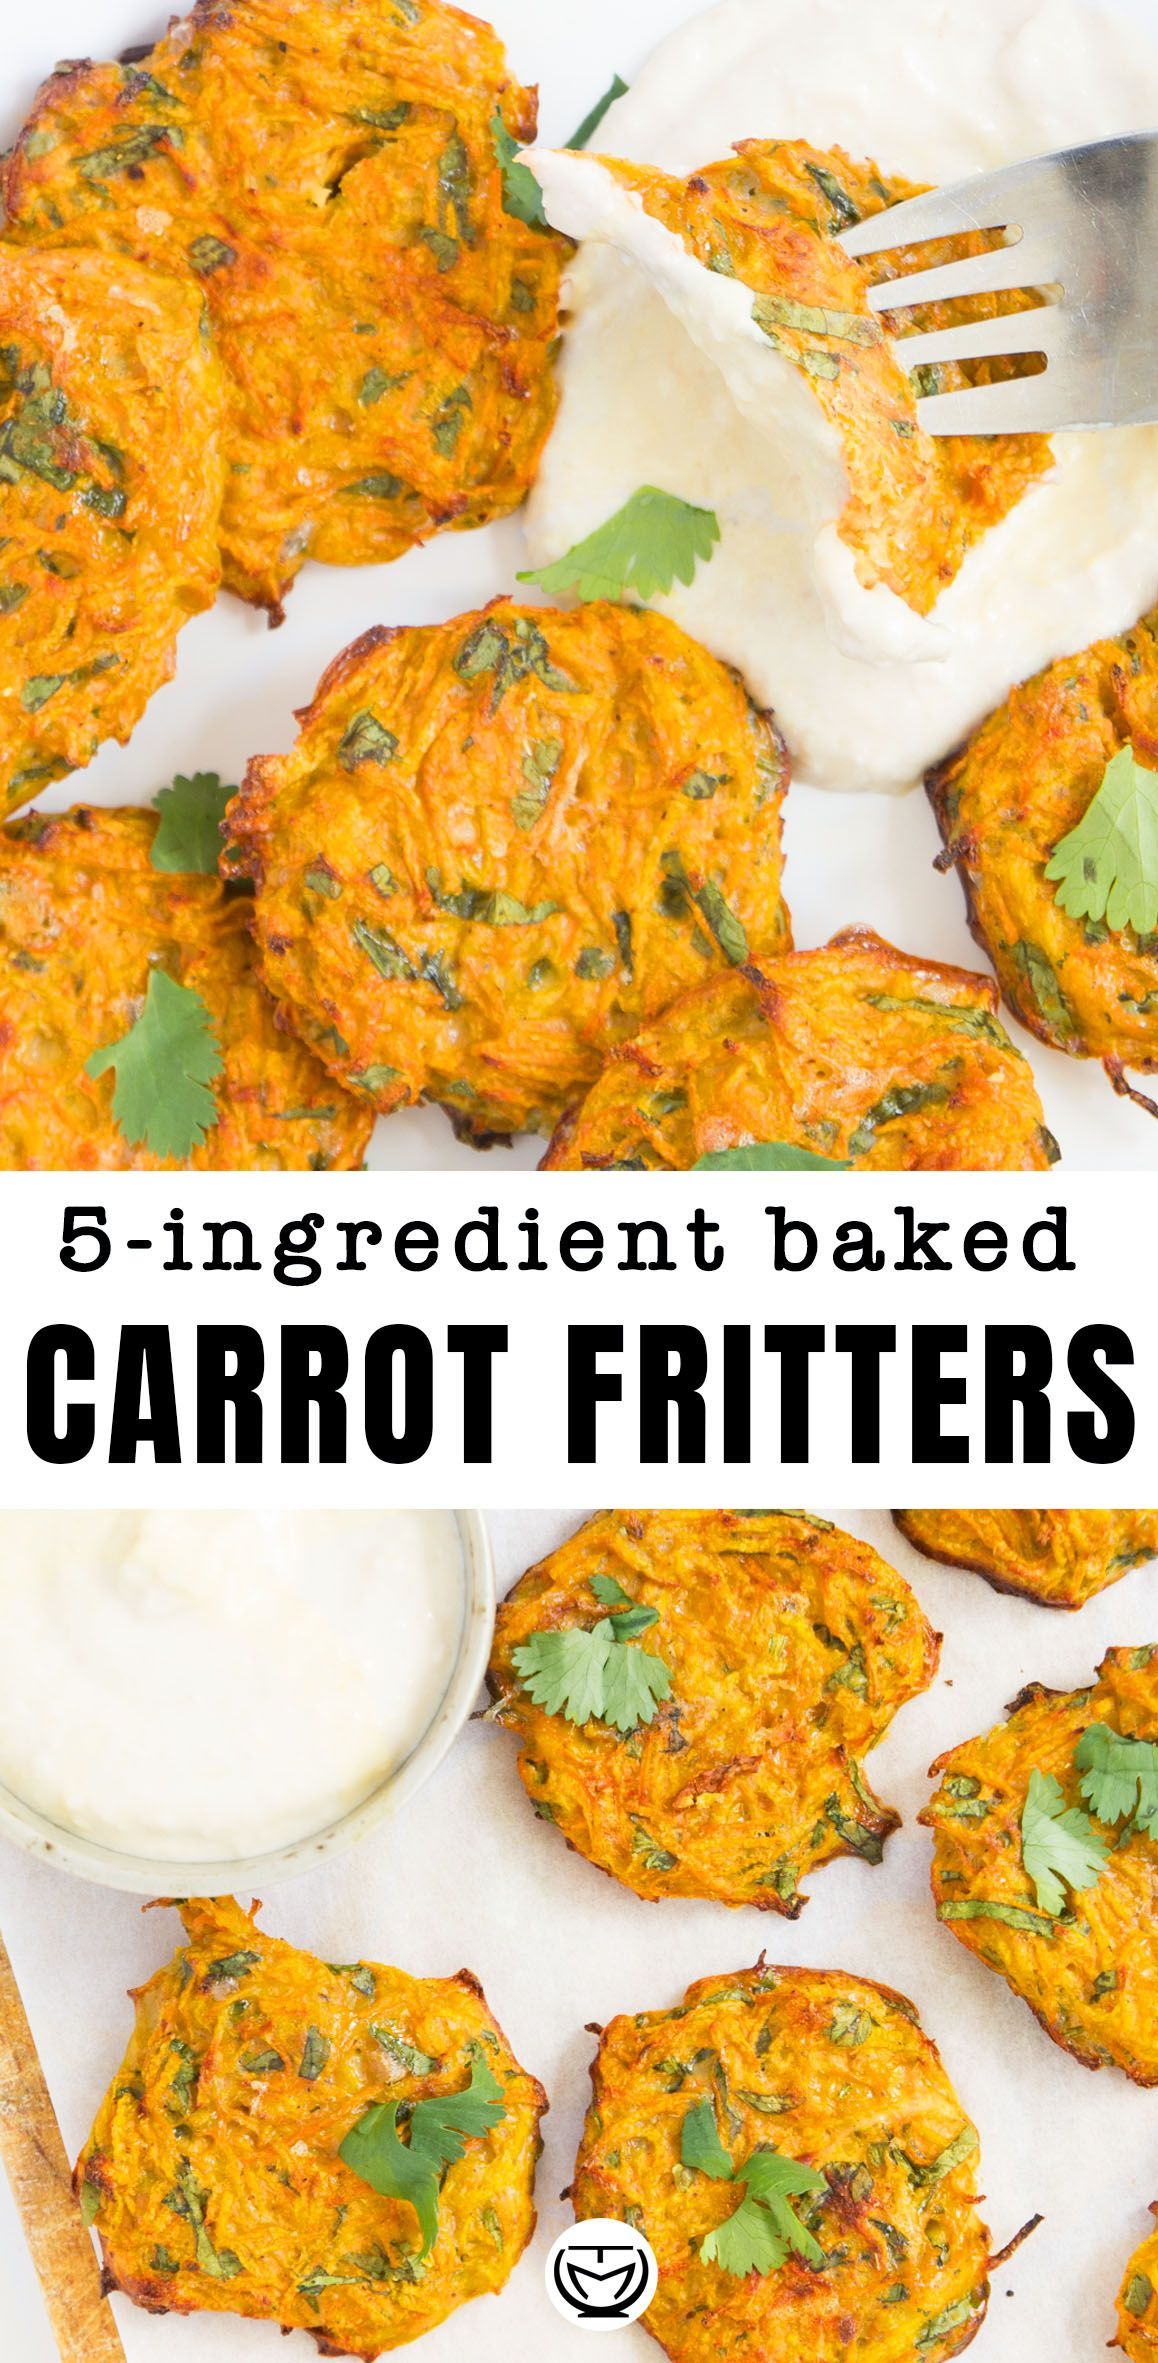 5-ingredient healthy carrot fritters images